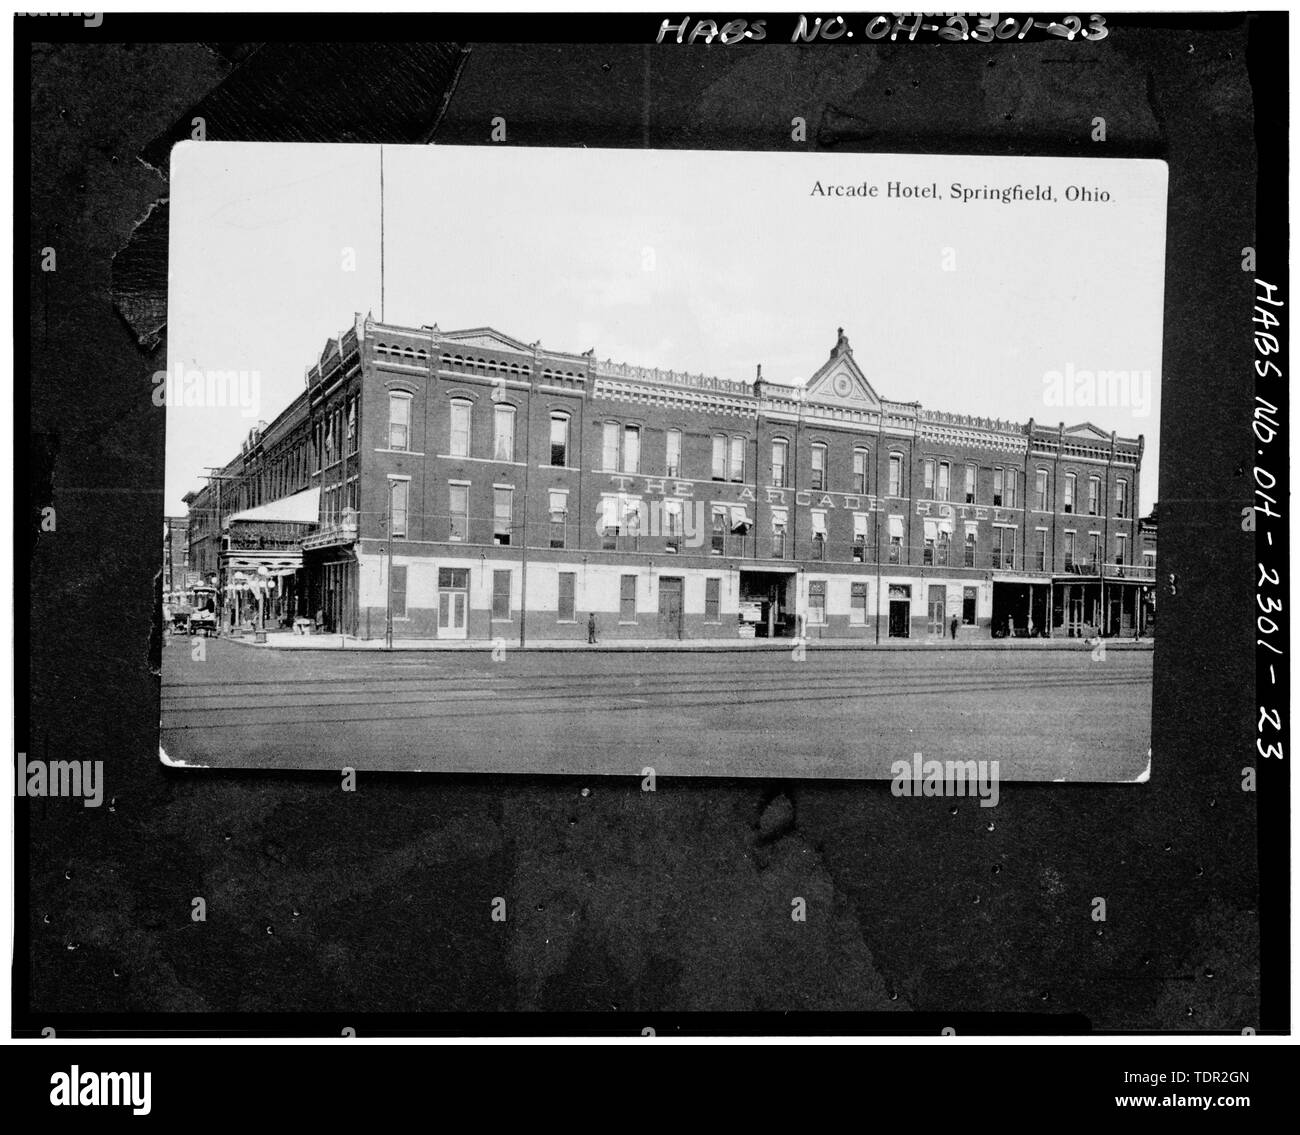 Photograph of postcard (from the Clark County Historical Society, Springfield, Ohio, date 12-10-1923) ARCADE HOTEL, VIEW NORTH, SOUTH FACADE. - Arcade Hotel, Fountain Avenue, bounded by High and Washington Streets, Springfield, Clark County, OH Stock Photo